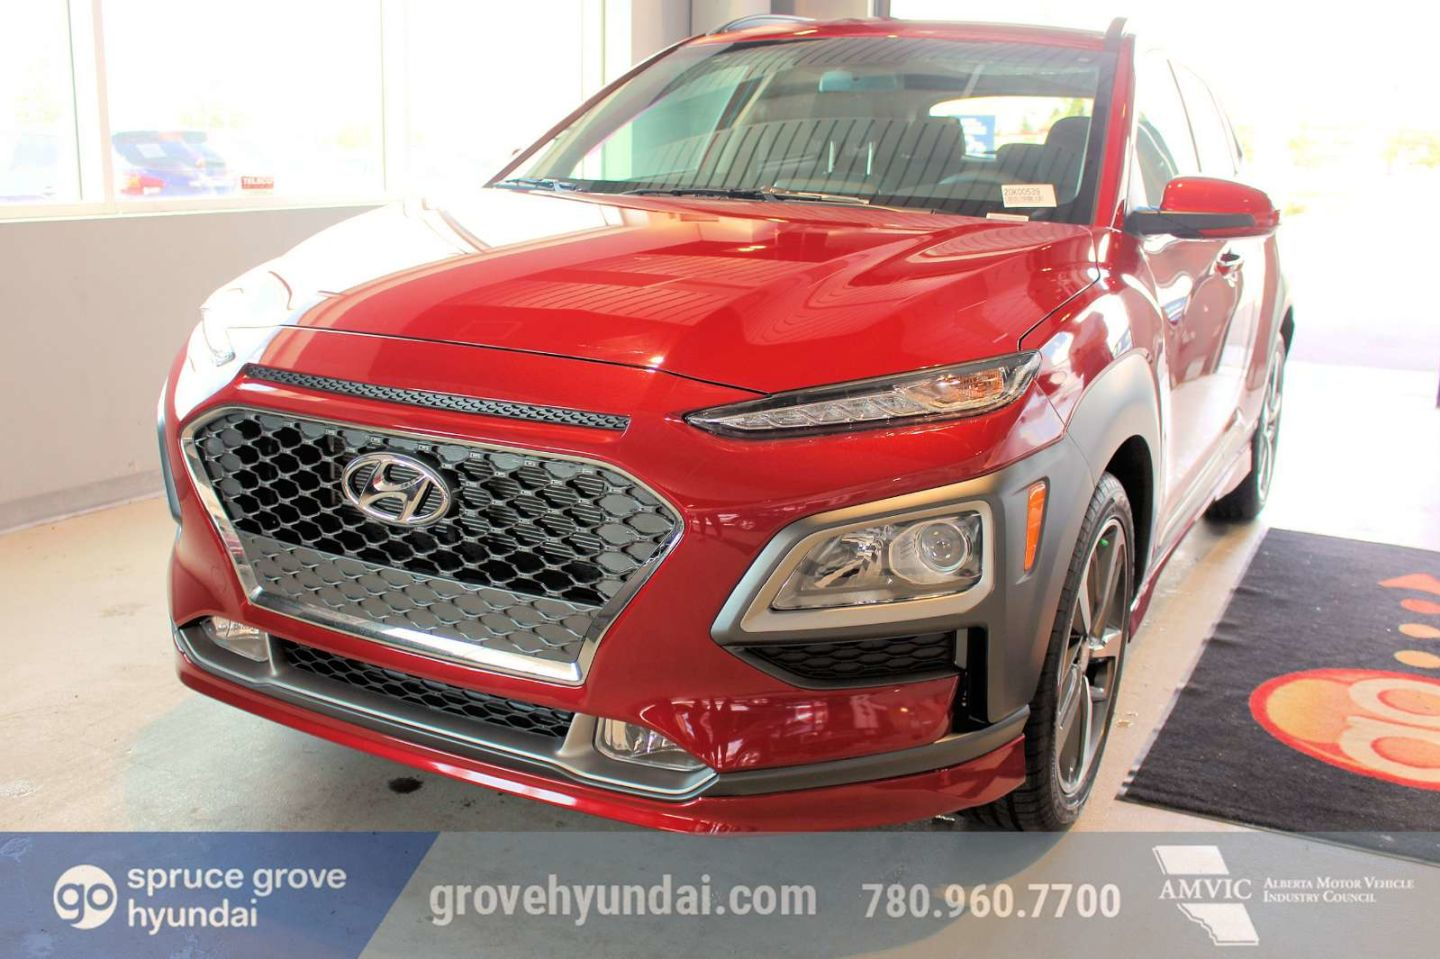 2020 Hyundai Kona Trend for sale in Spruce Grove, Alberta